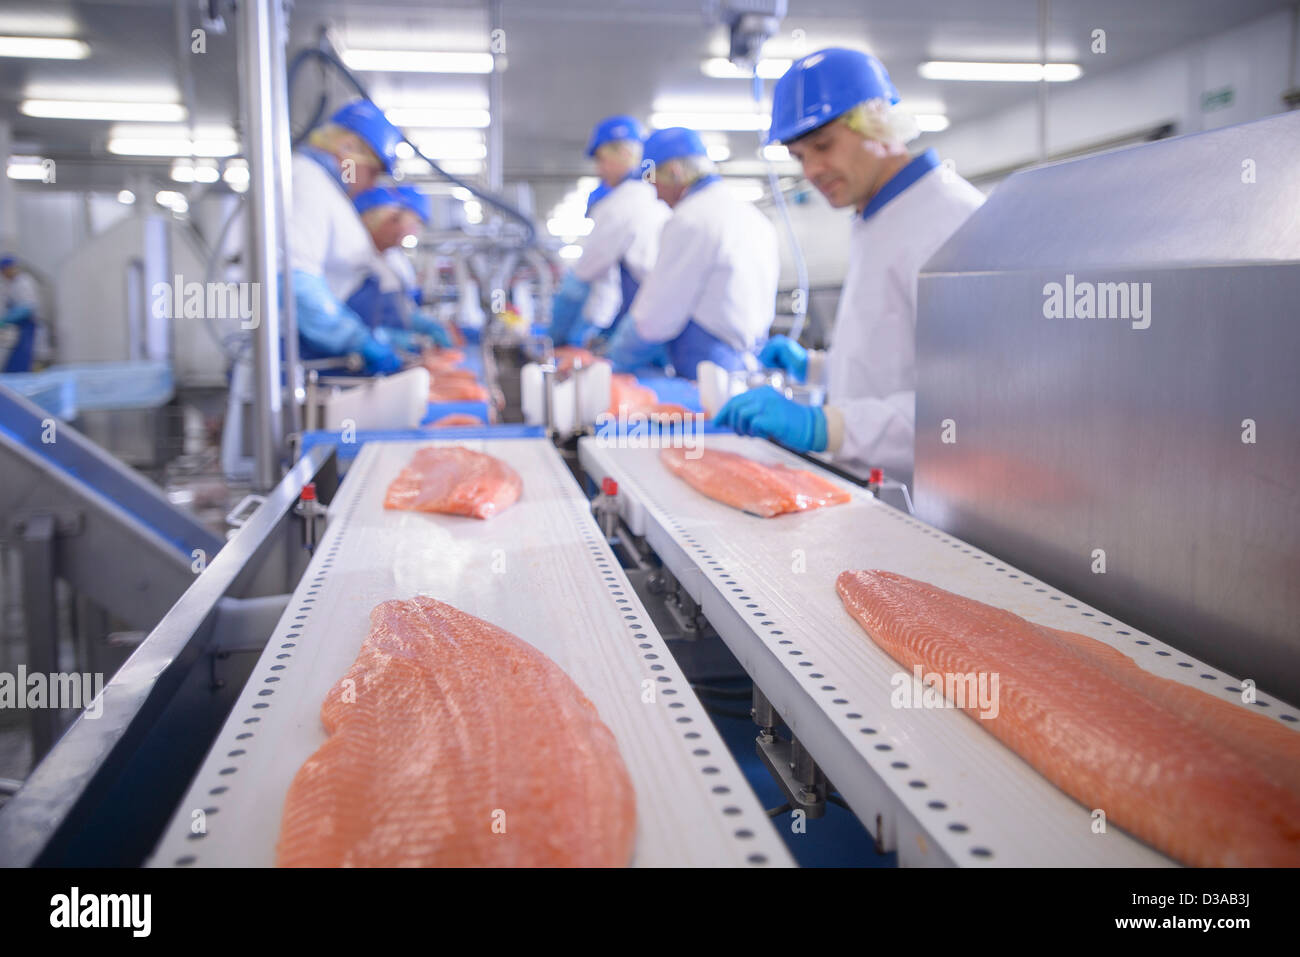 Workers in food factory preparing salmon fillets - Stock Image